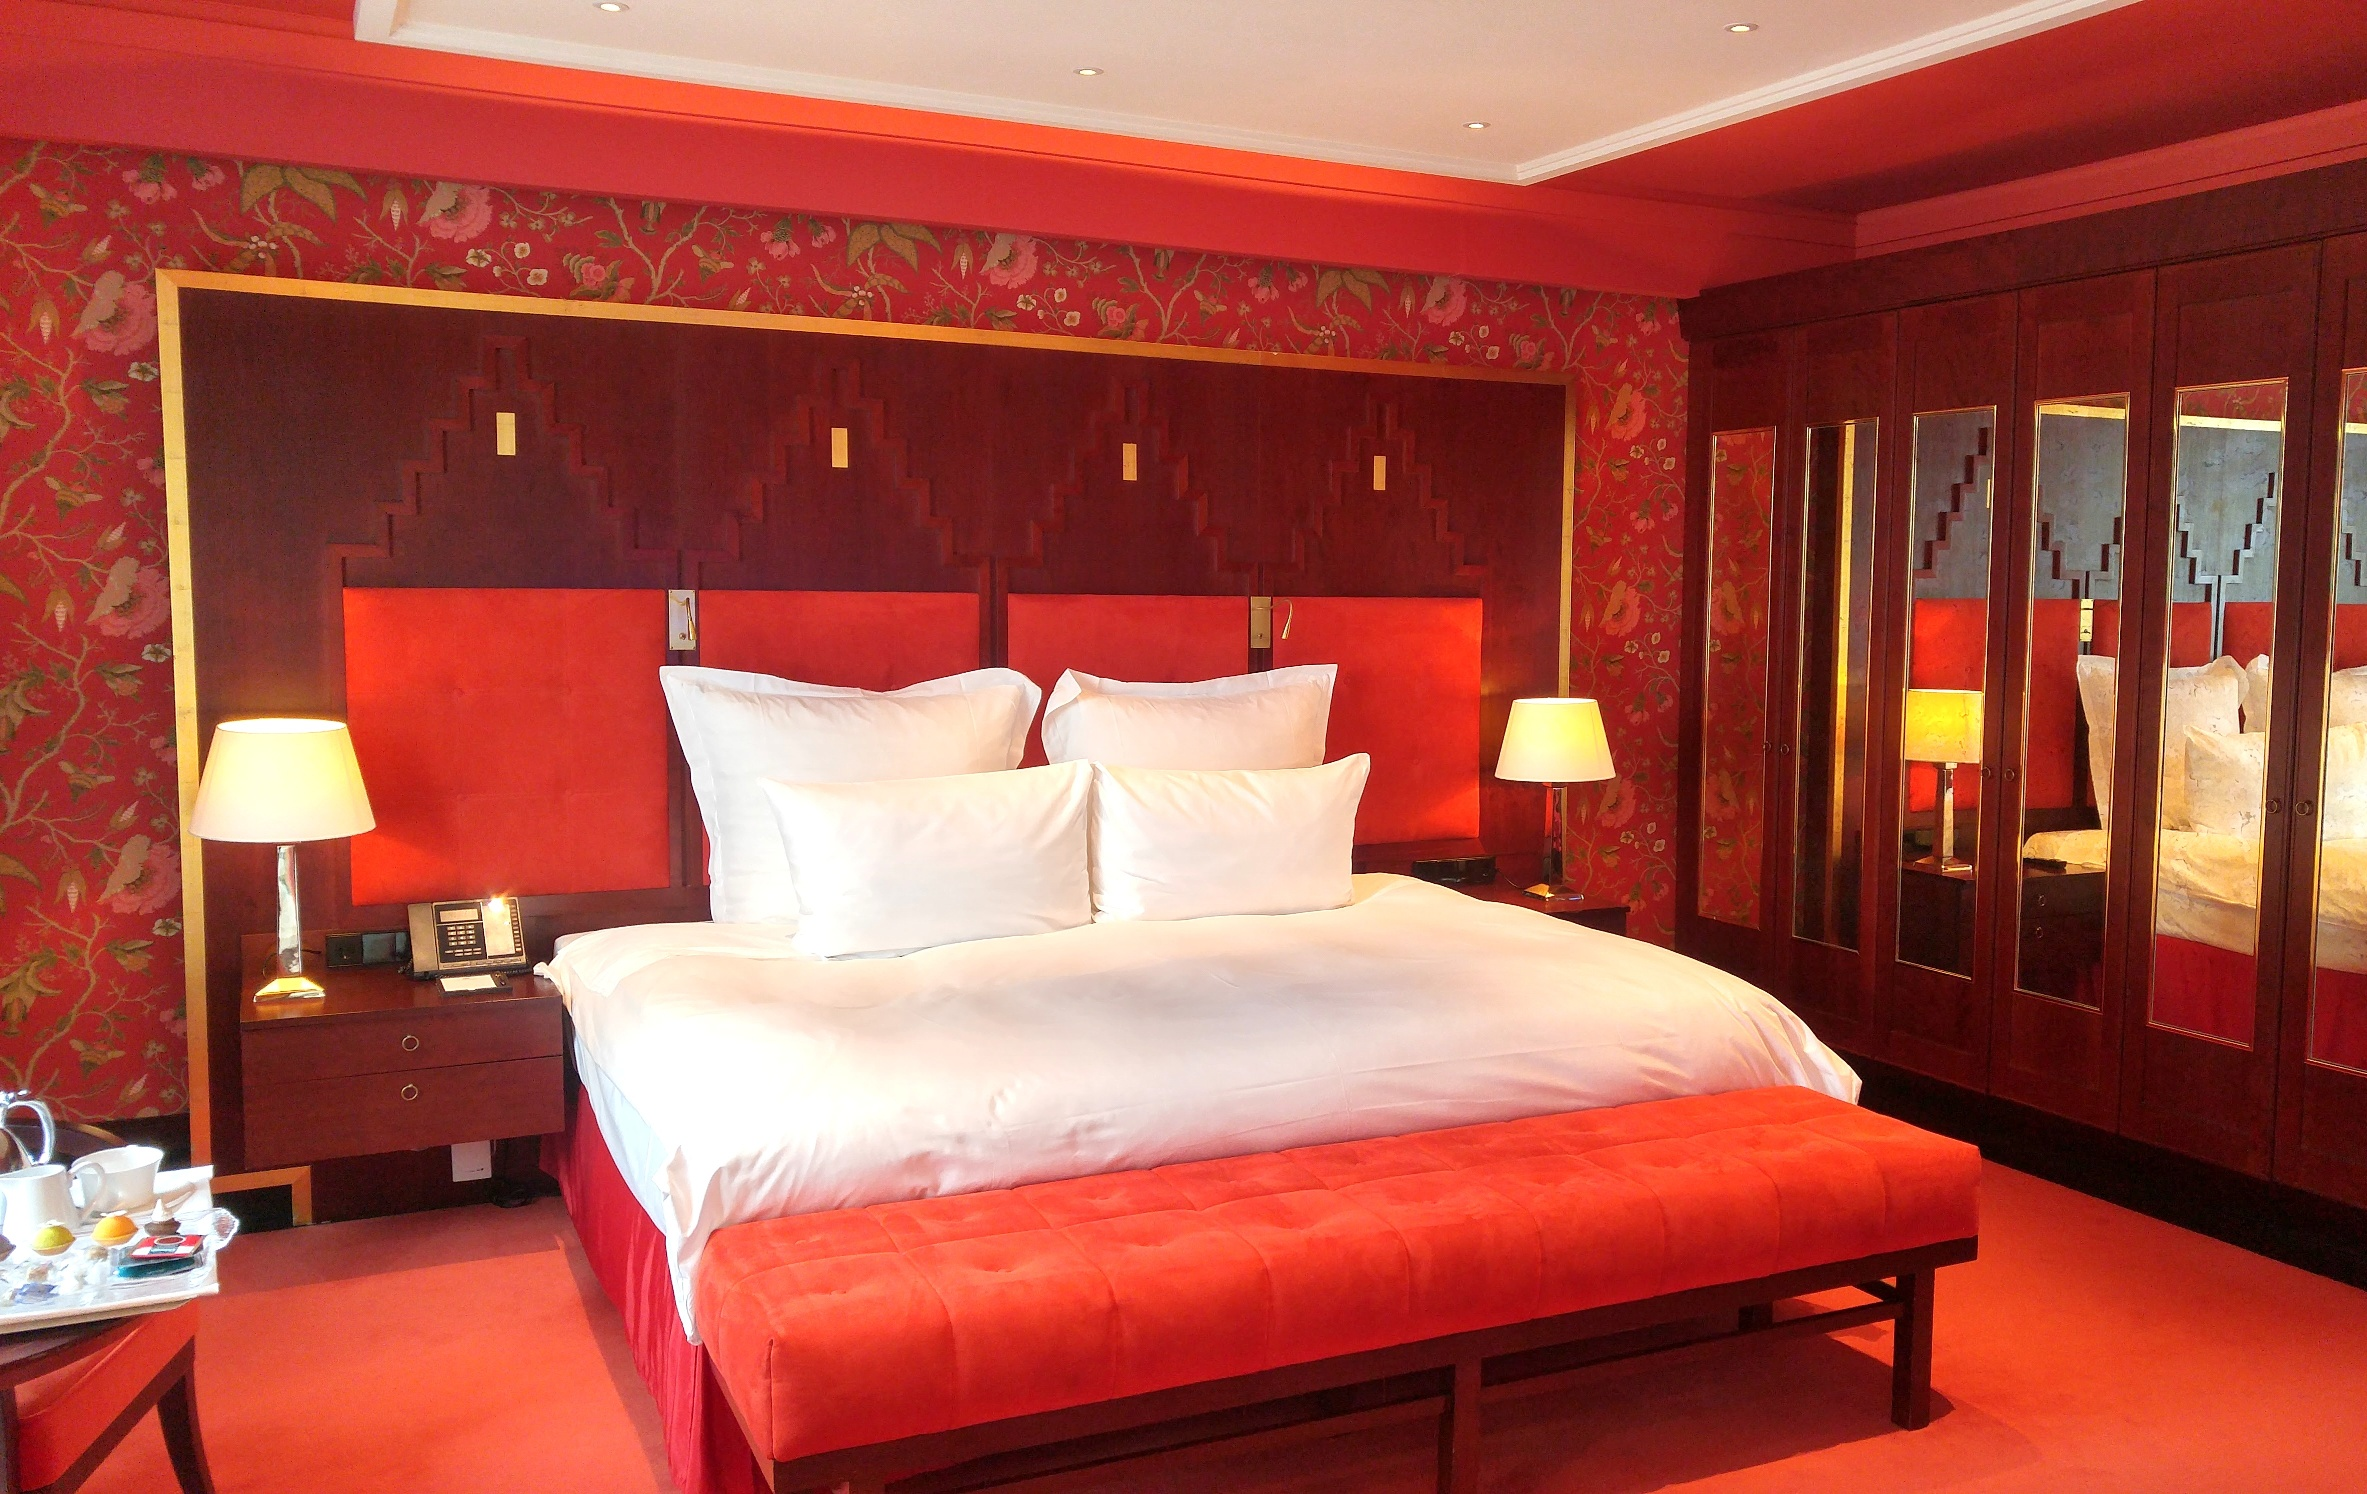 Kingsize bed in Junior Suite at De L'Europe Amsterdam by night